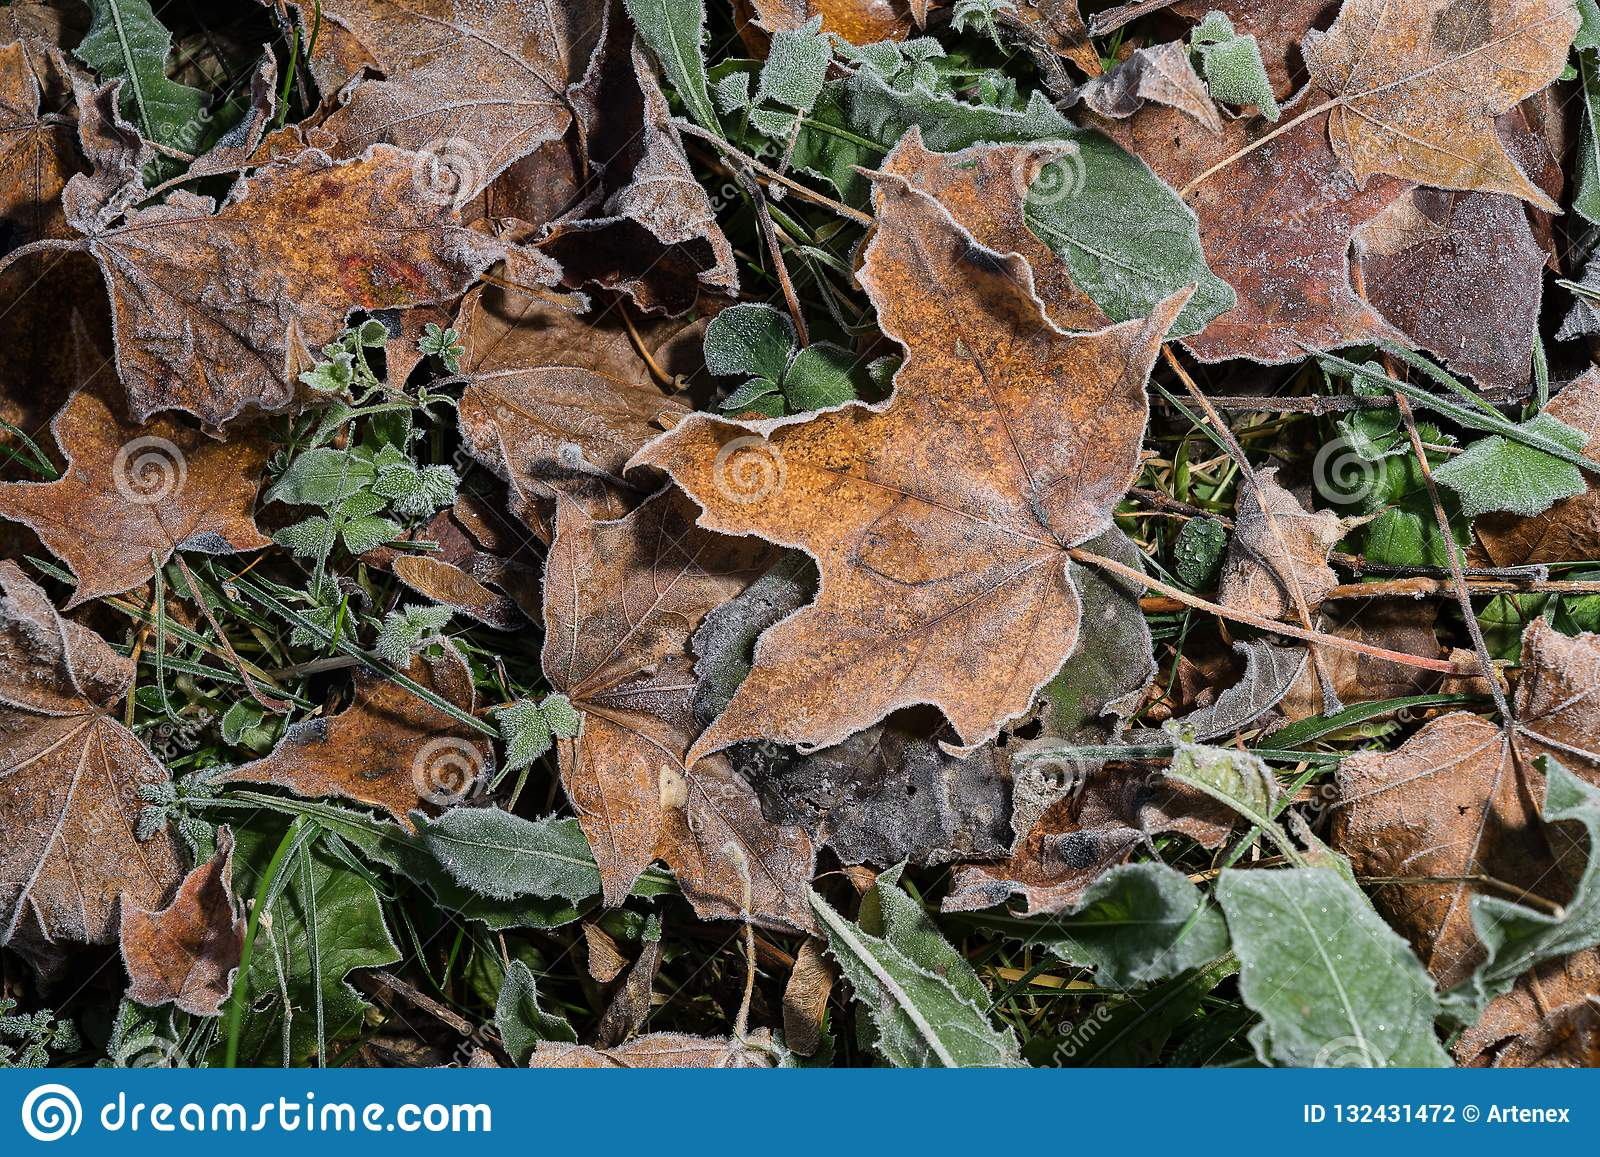 Colored maple leaves. Frosty brown autumn leaves. Natural environment background